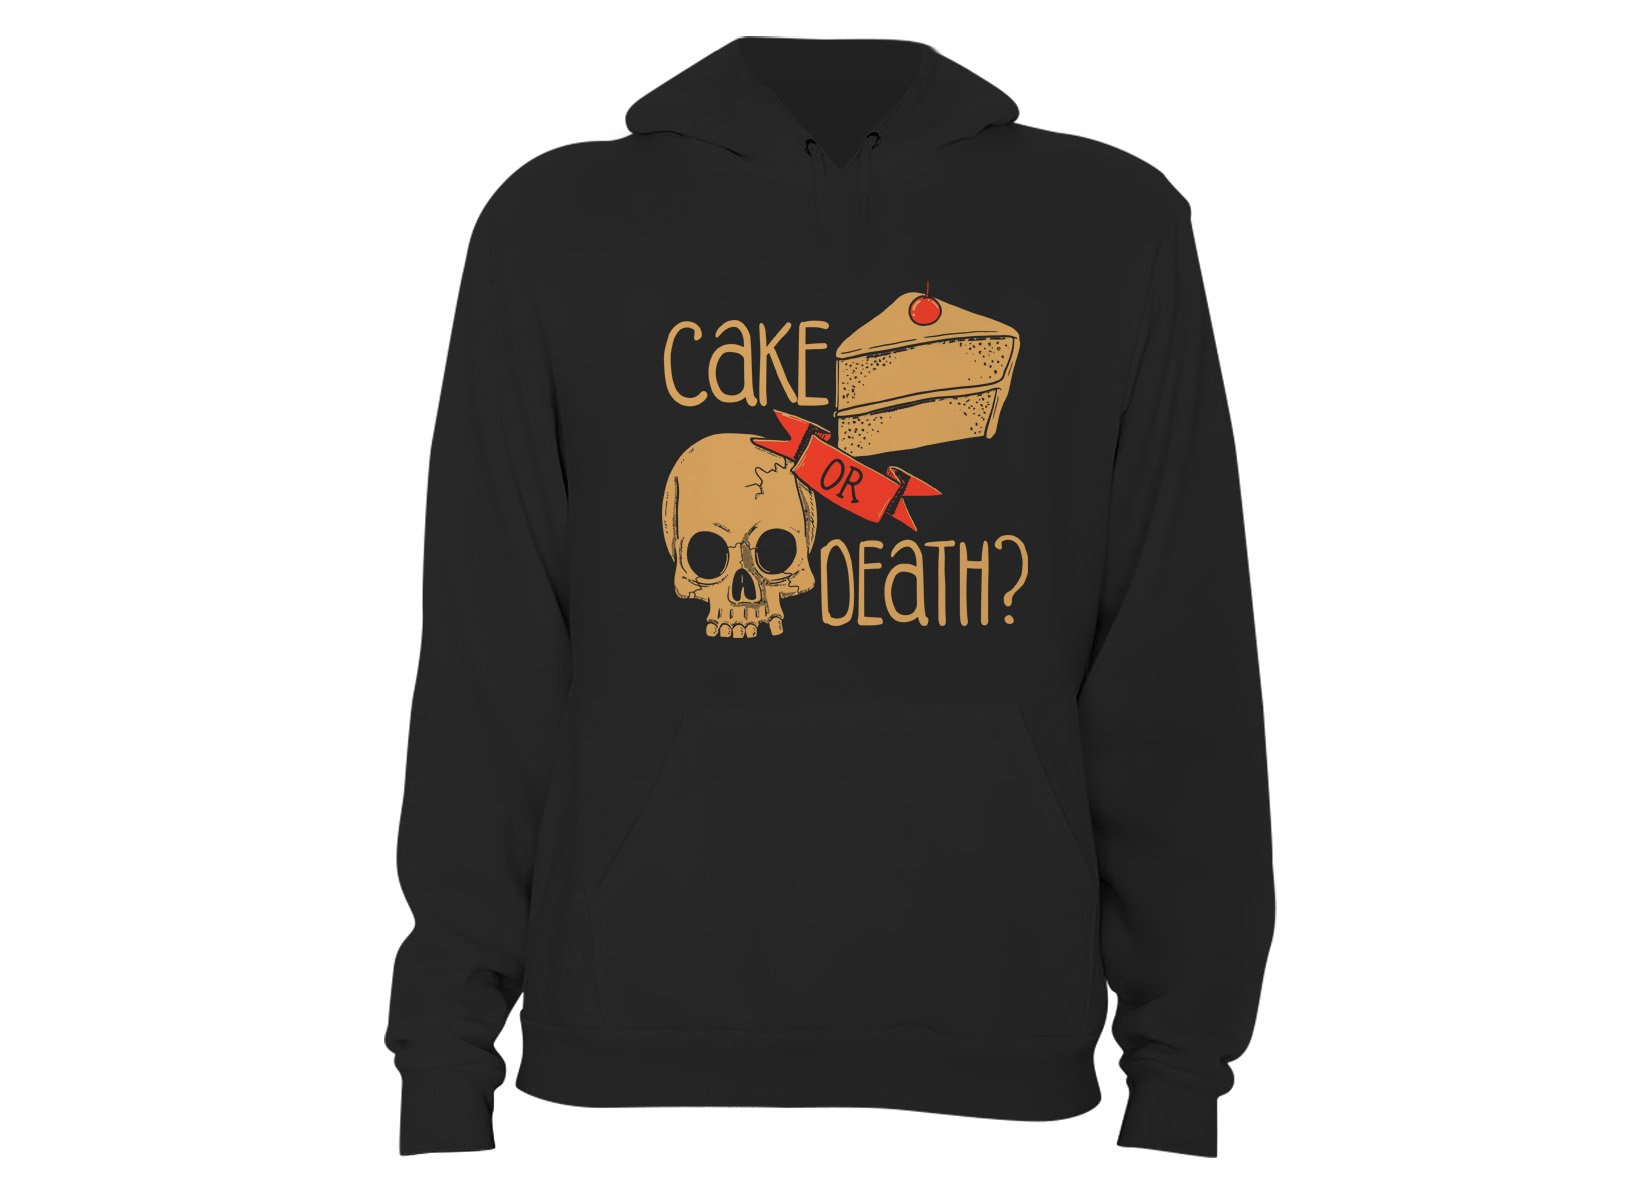 Cake Or Death? on Hoodie